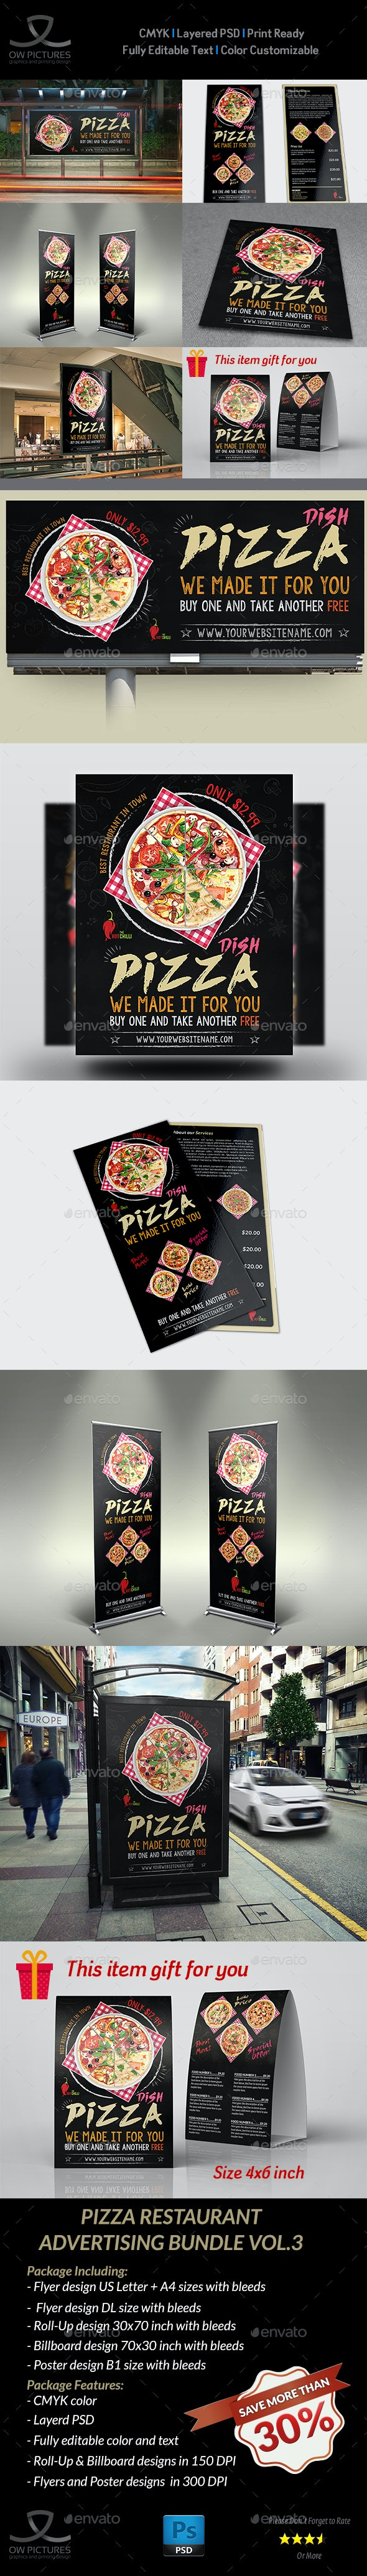 Pizza Restaurant Advertising Bundle Vol.3 - Signage Print Templates